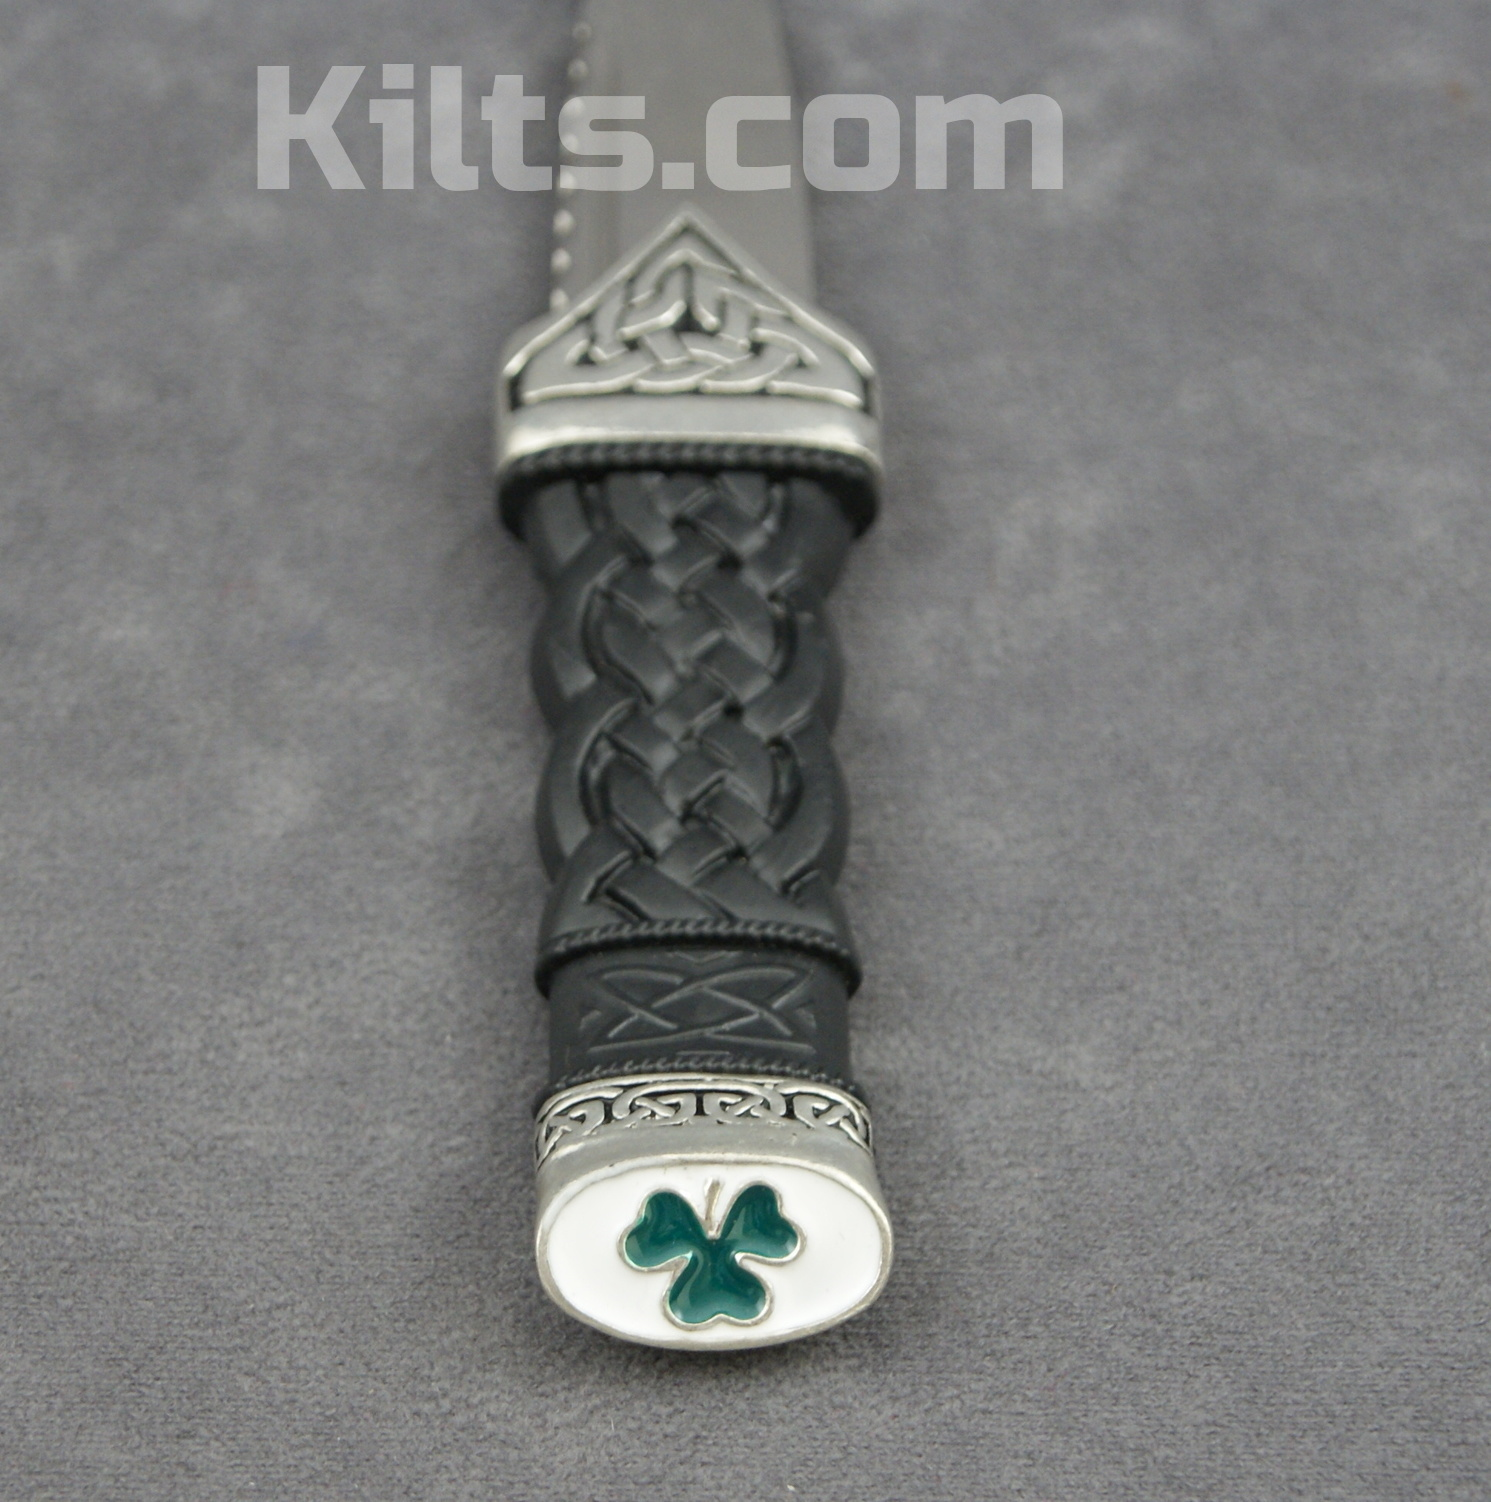 Looking for a Shamrock Dress Sgian Dubh (Shamrock Irish Kilt Knife)?